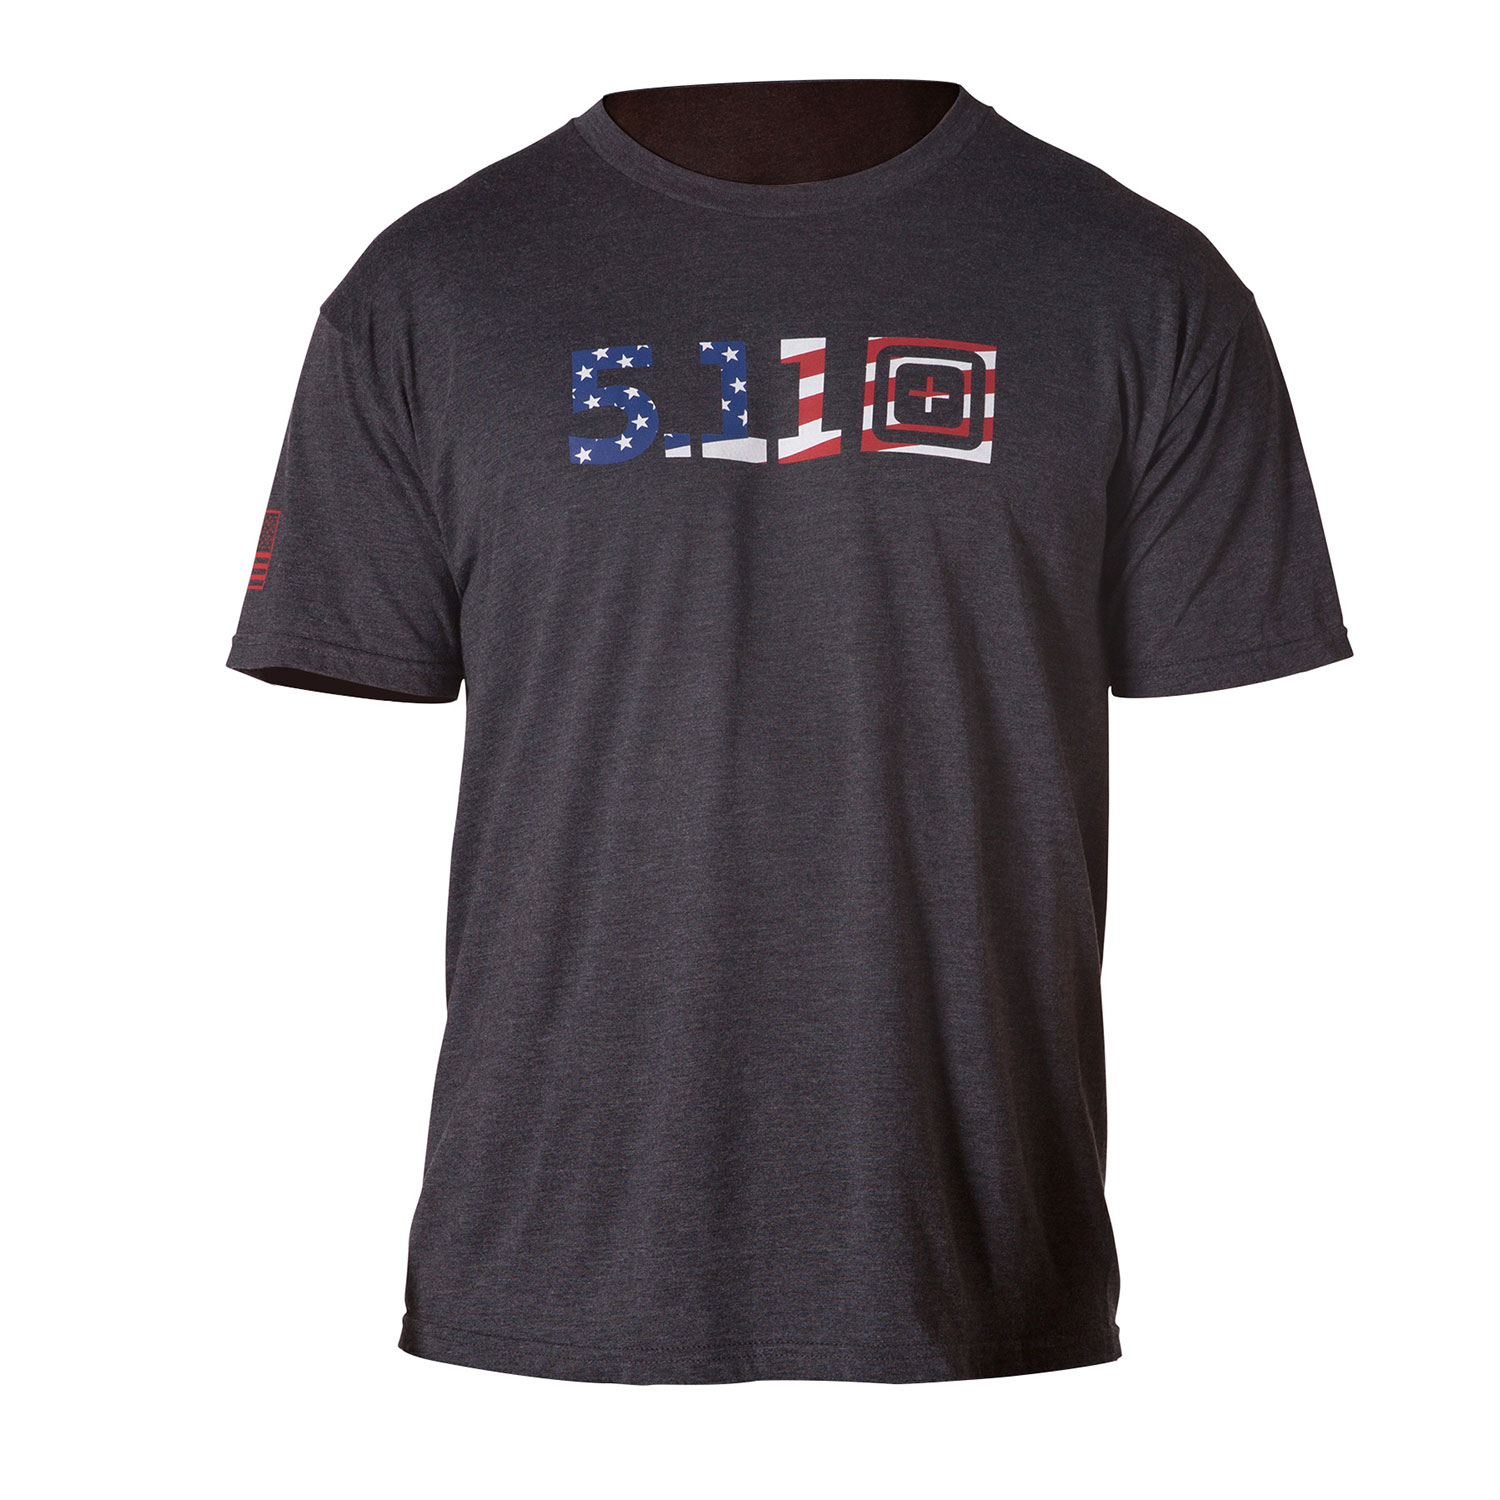 0a931e920 5.11 Legacy USA Flag Fill T-Shirt